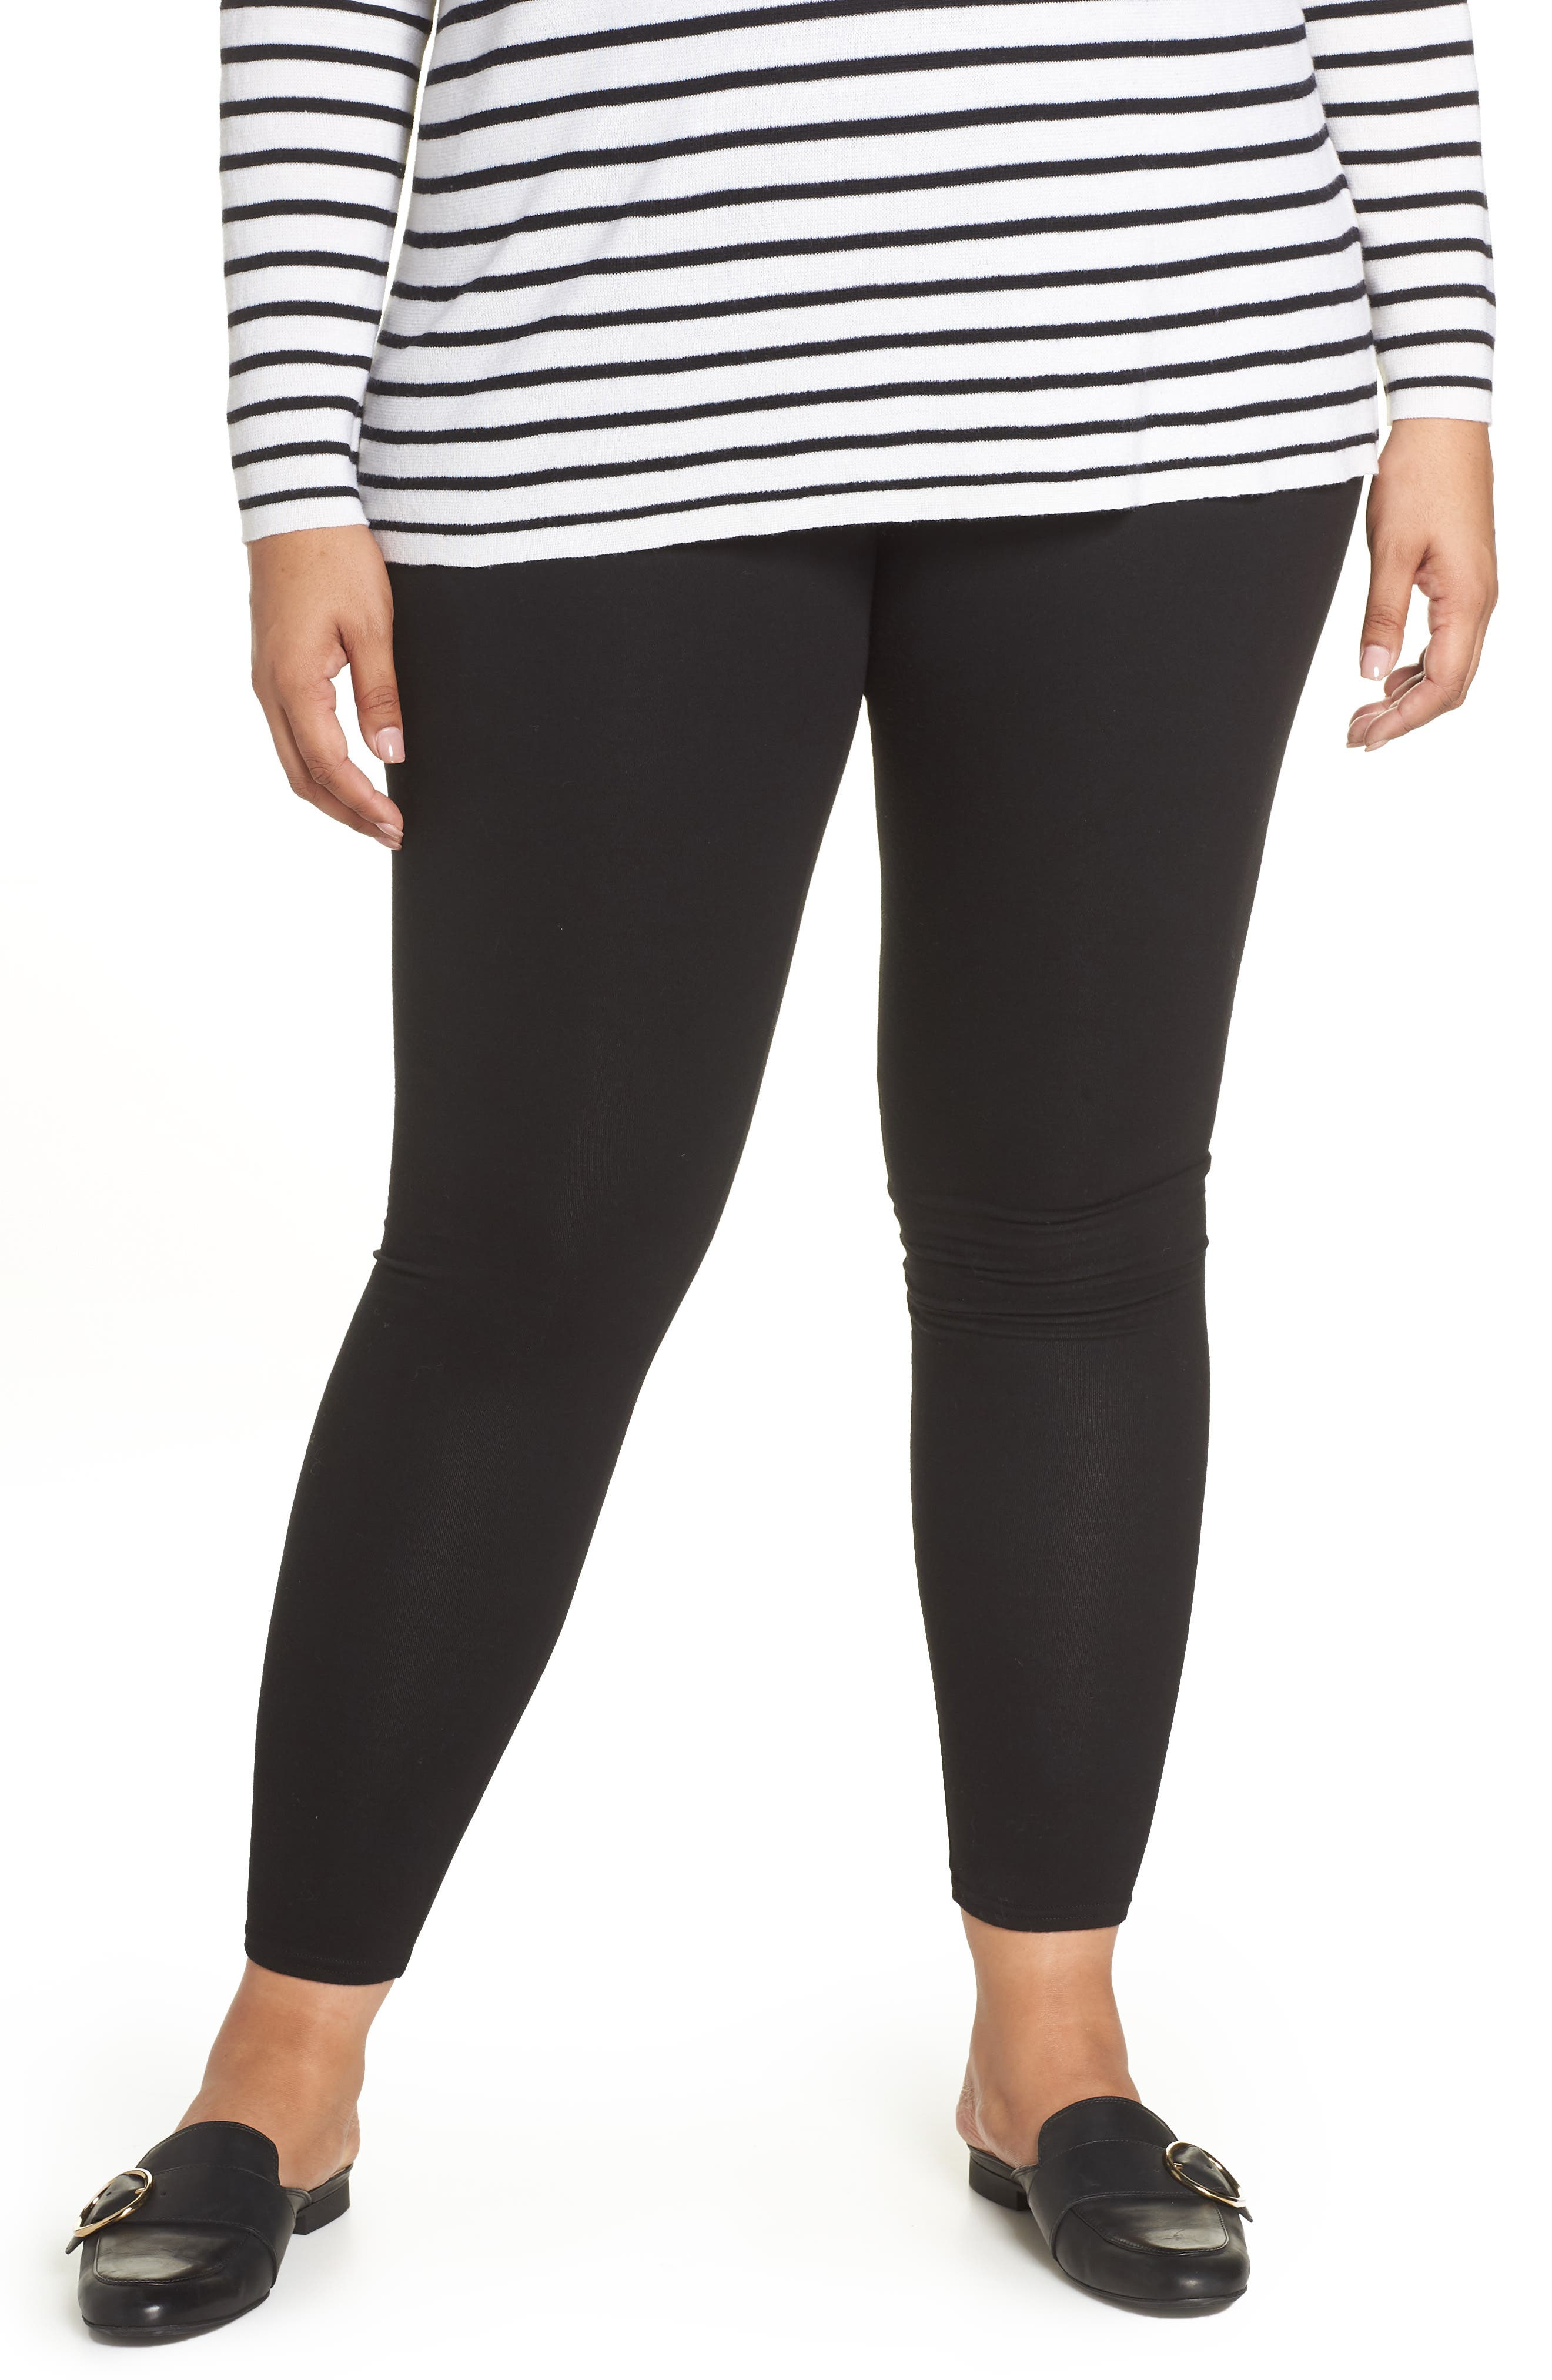 Plus Size Nordstrom Go-To High Waist Leggings, Black